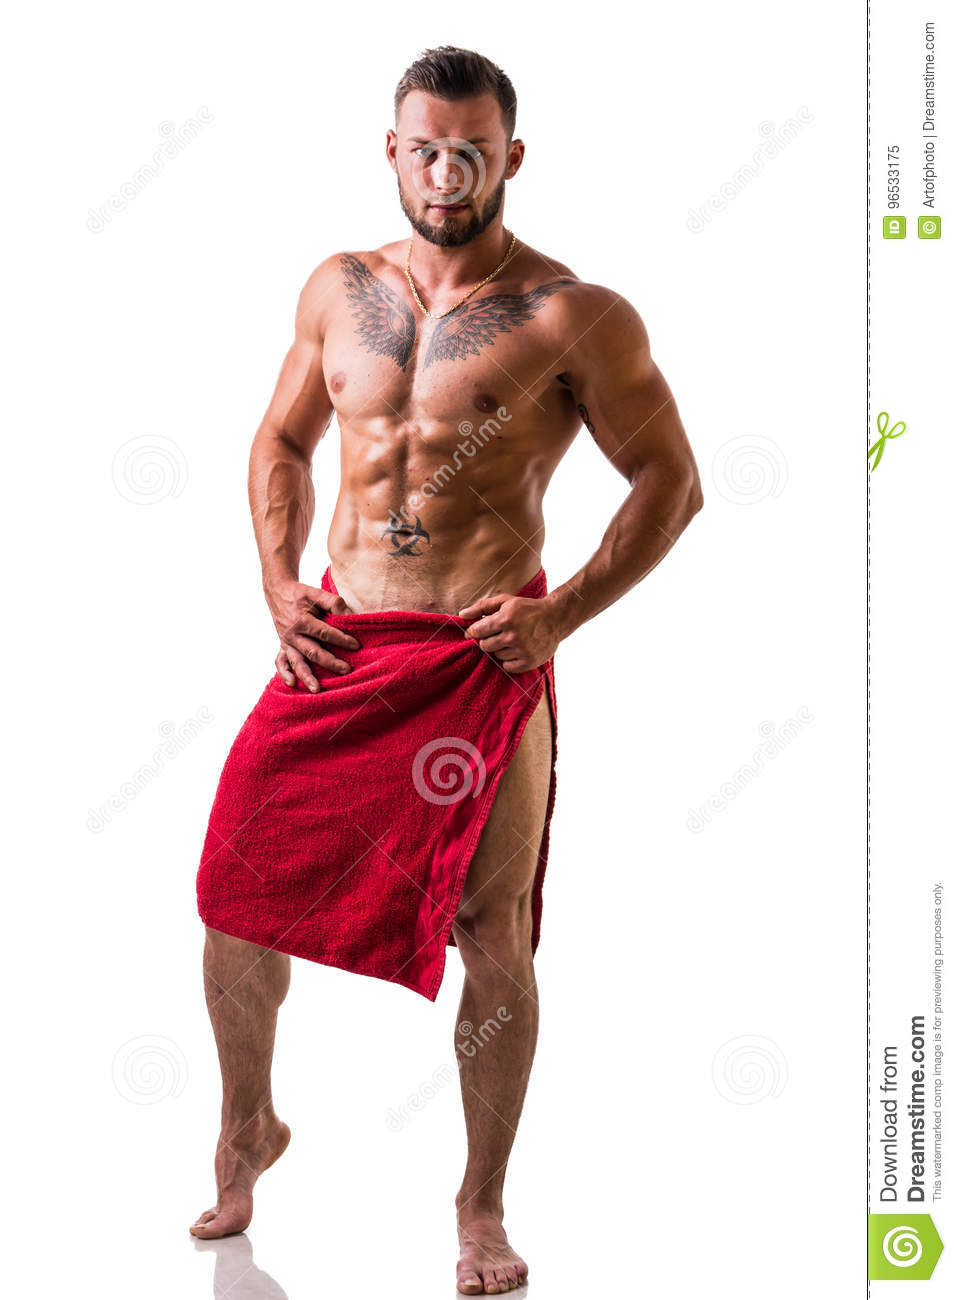 Handsome Topless Muscular Man With Towel Stock Image - Image of side ... d72e747ac